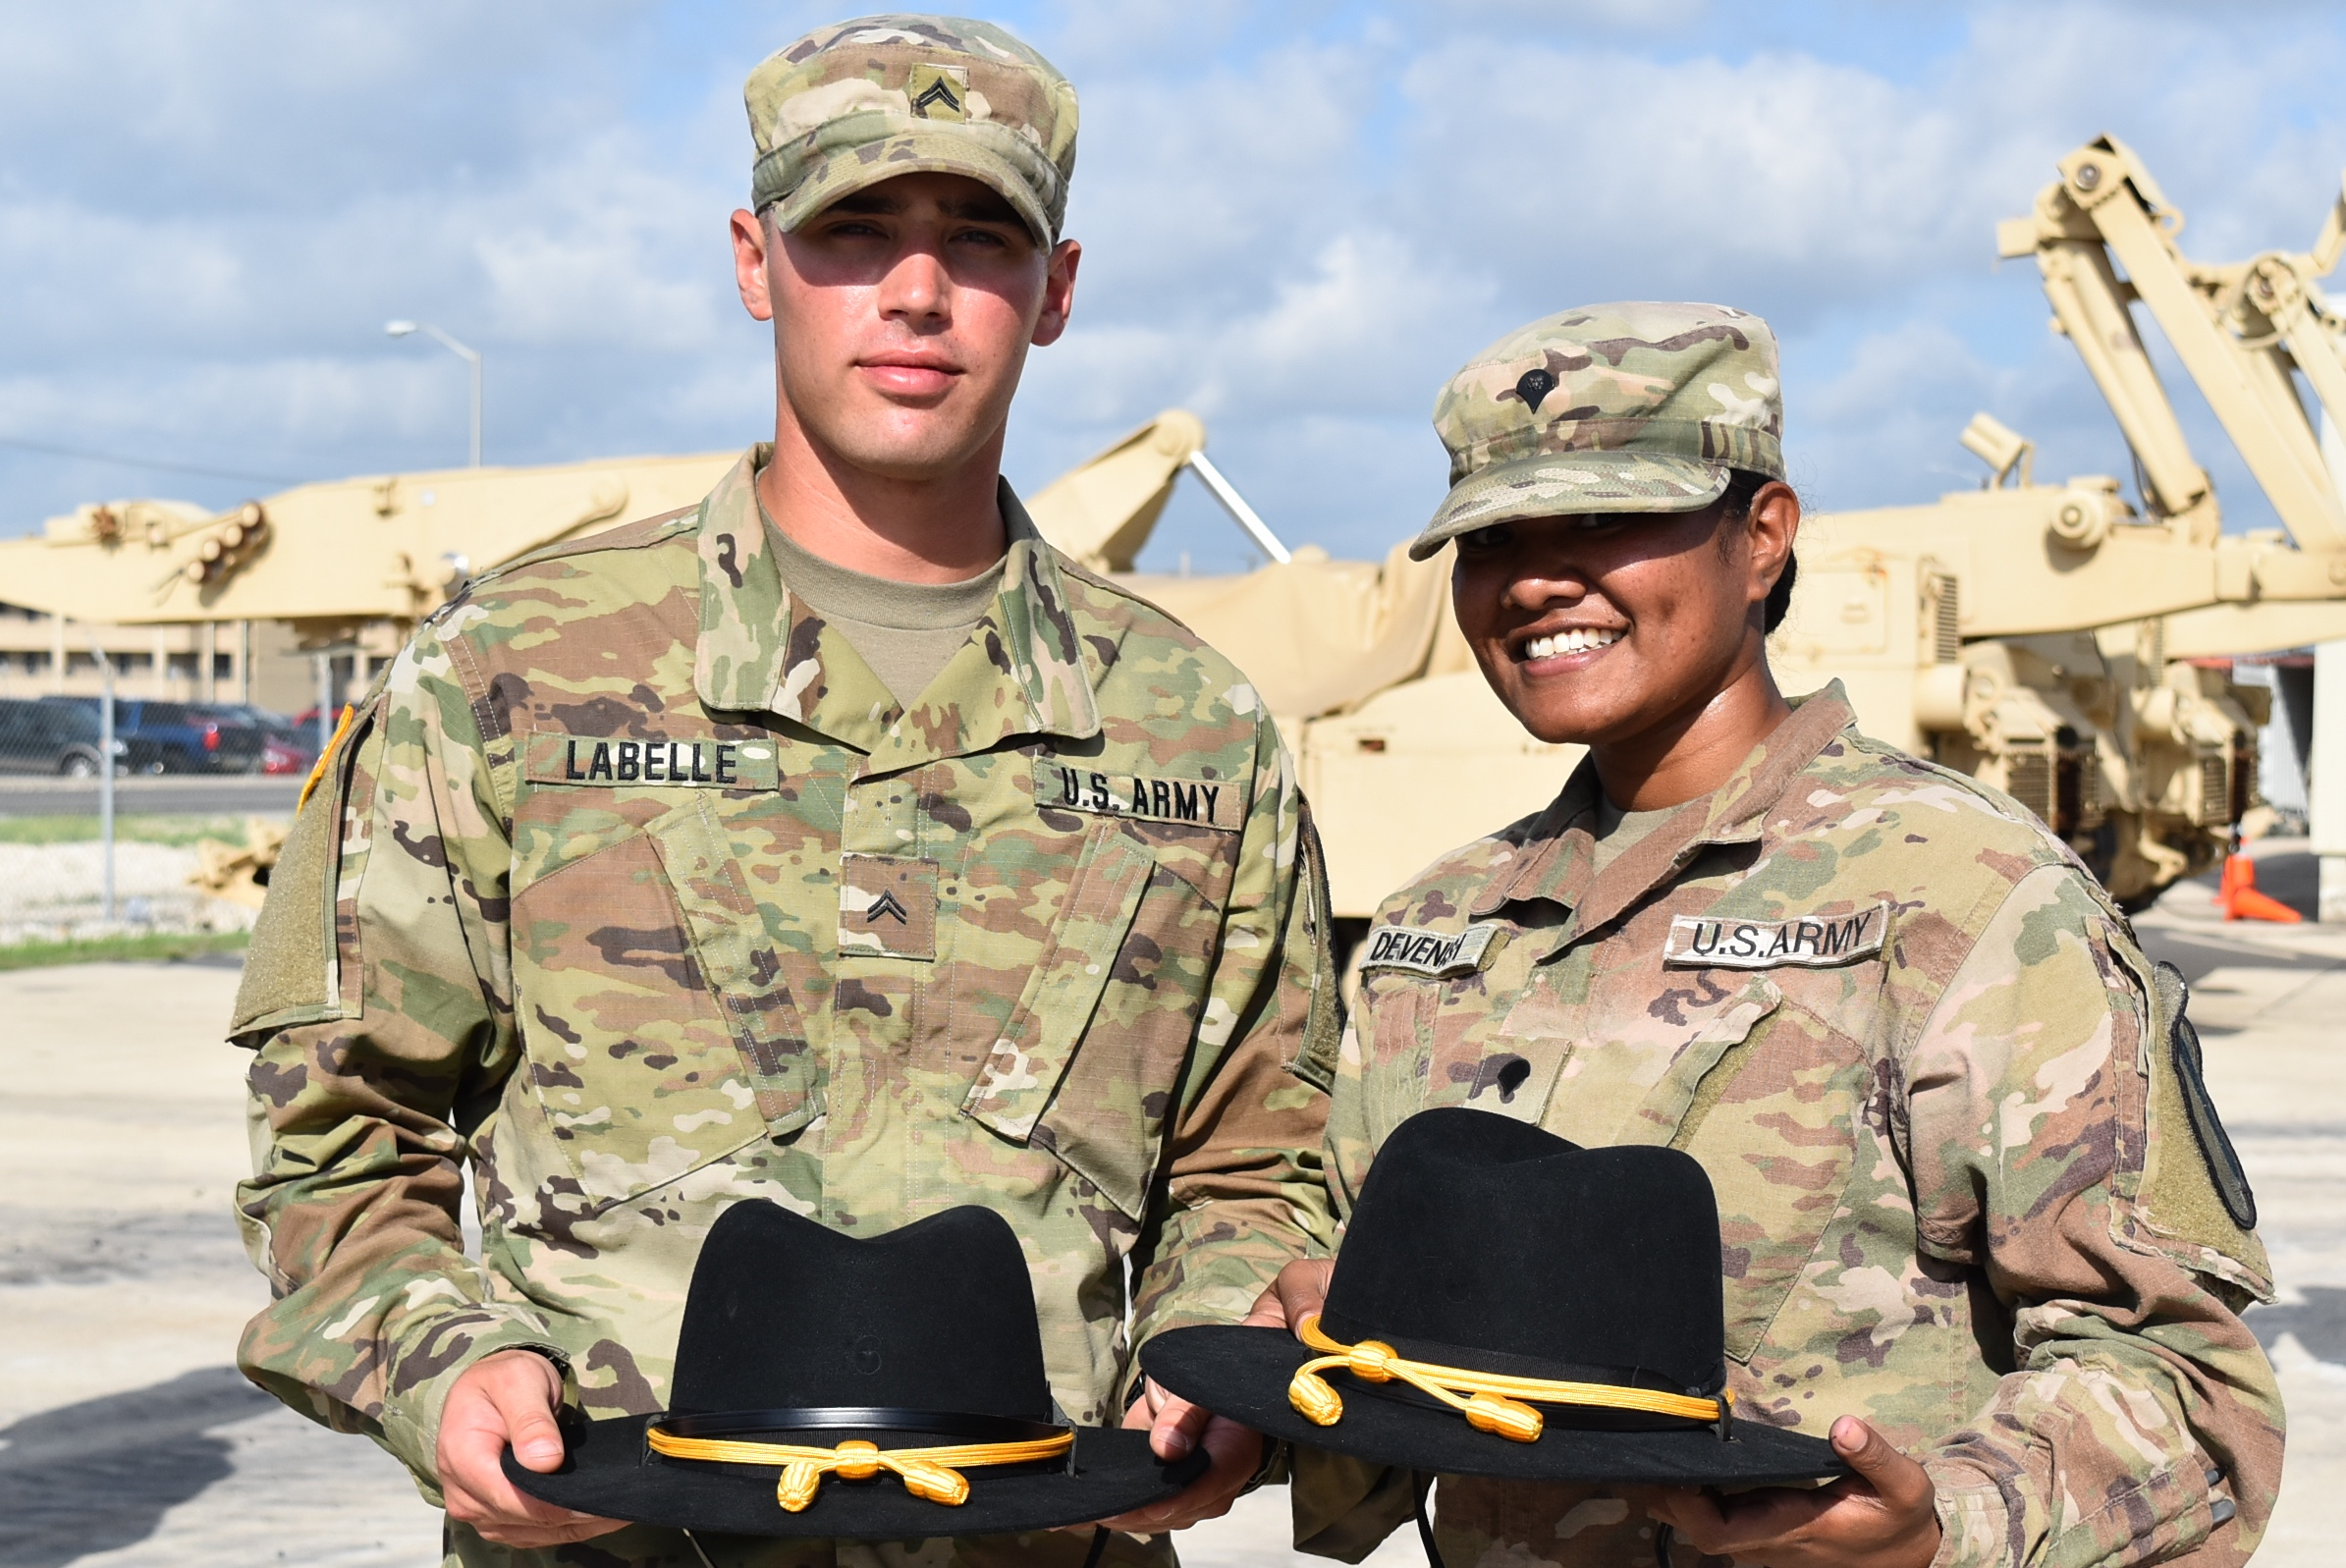 PHOTOS: PHOTO: Soldiers with the 3rd Brigade Engineer Battalion show off their new Cavalry Stetsons.